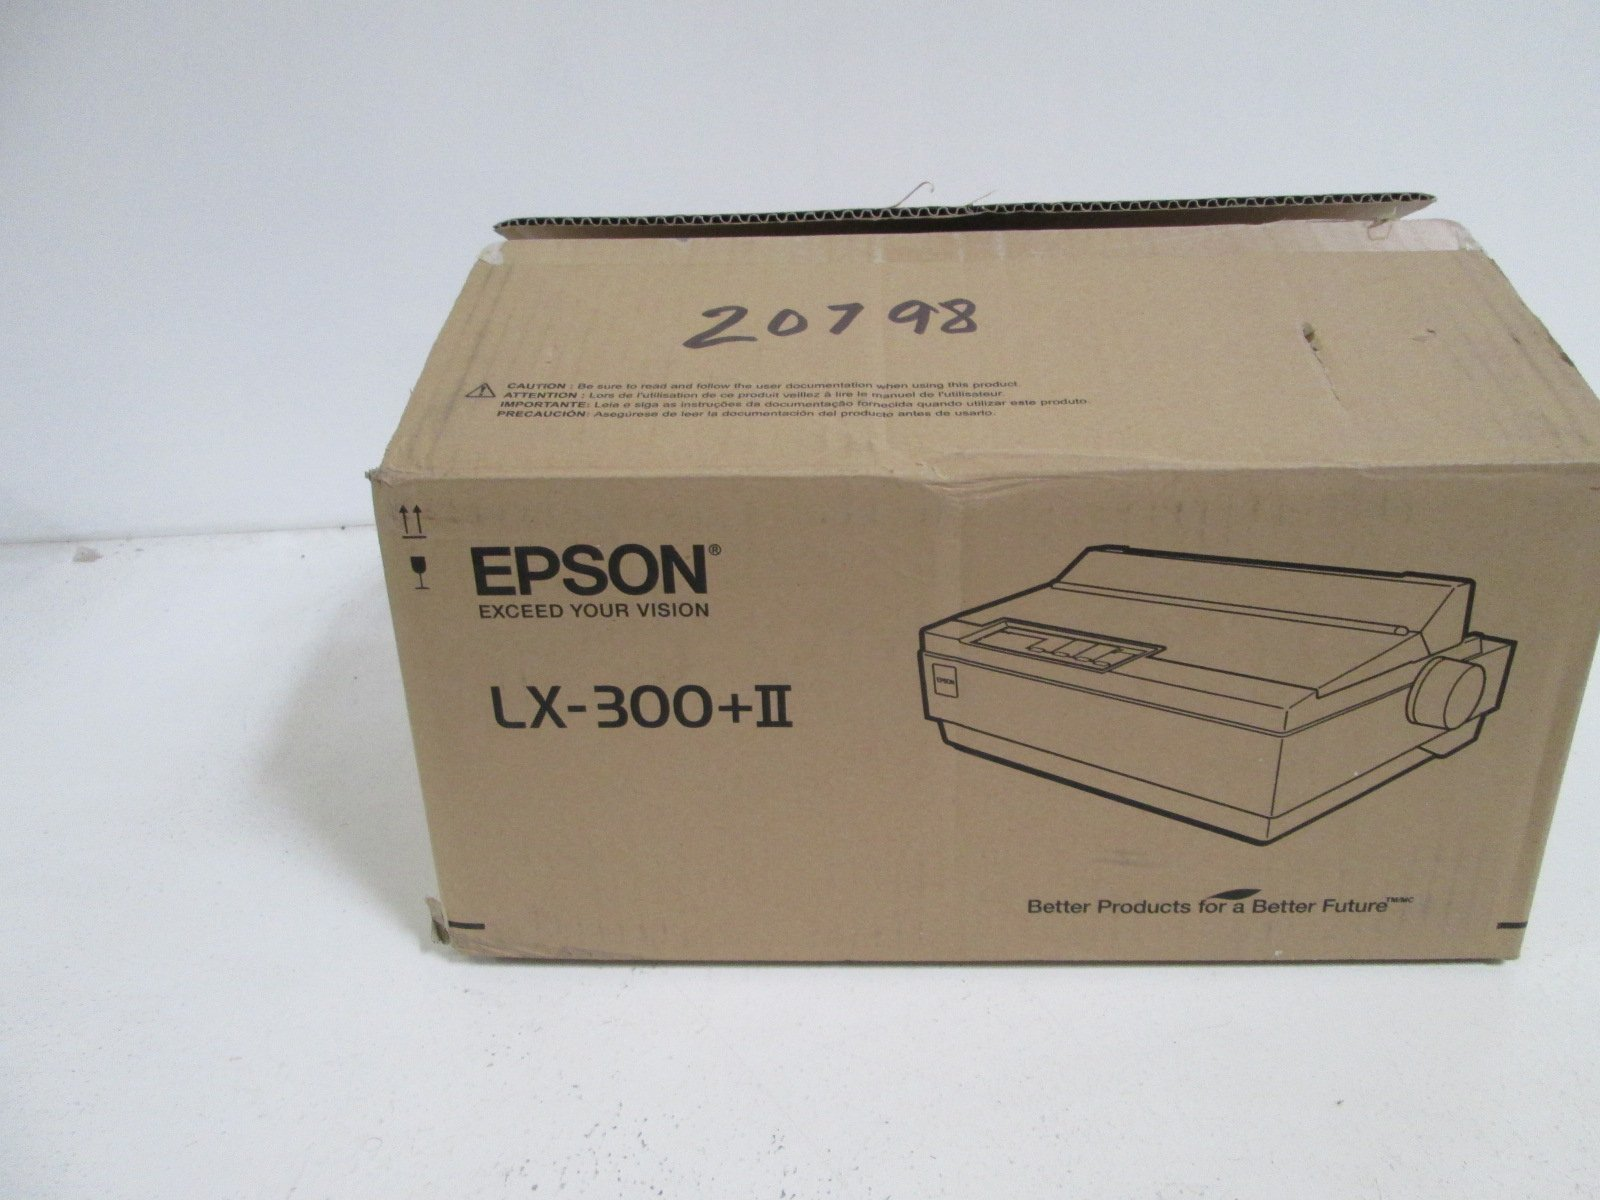 EPSON PRINTER LX-300+II *NEW IN BOX* by EPSON